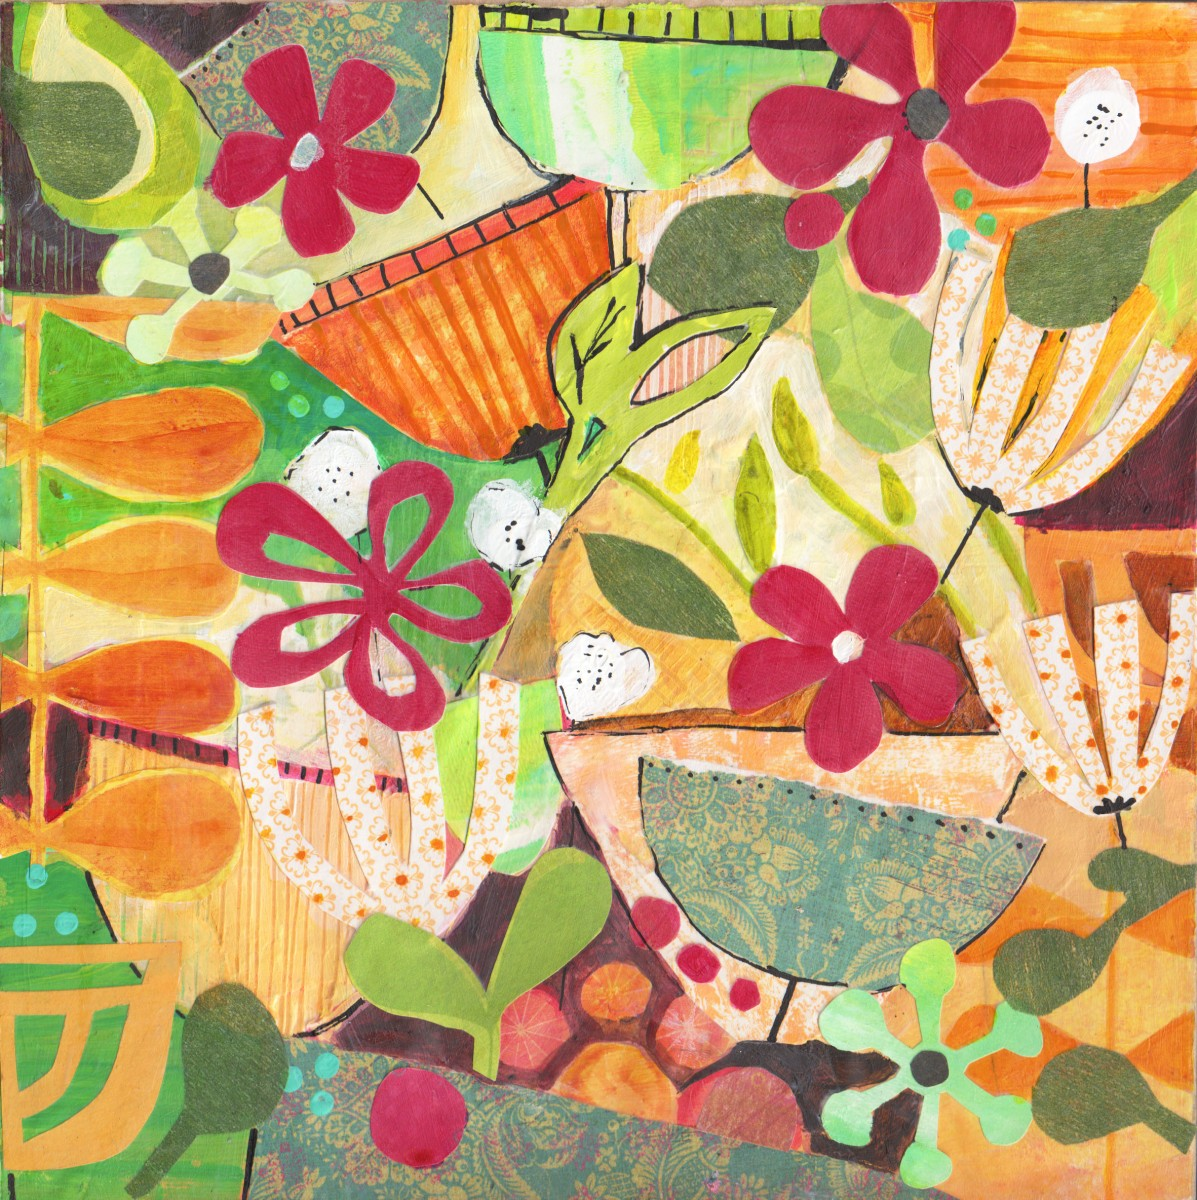 Tangled Weave (mixed media collage) - Julie Hamilton Designs {artistically afflicted blog}